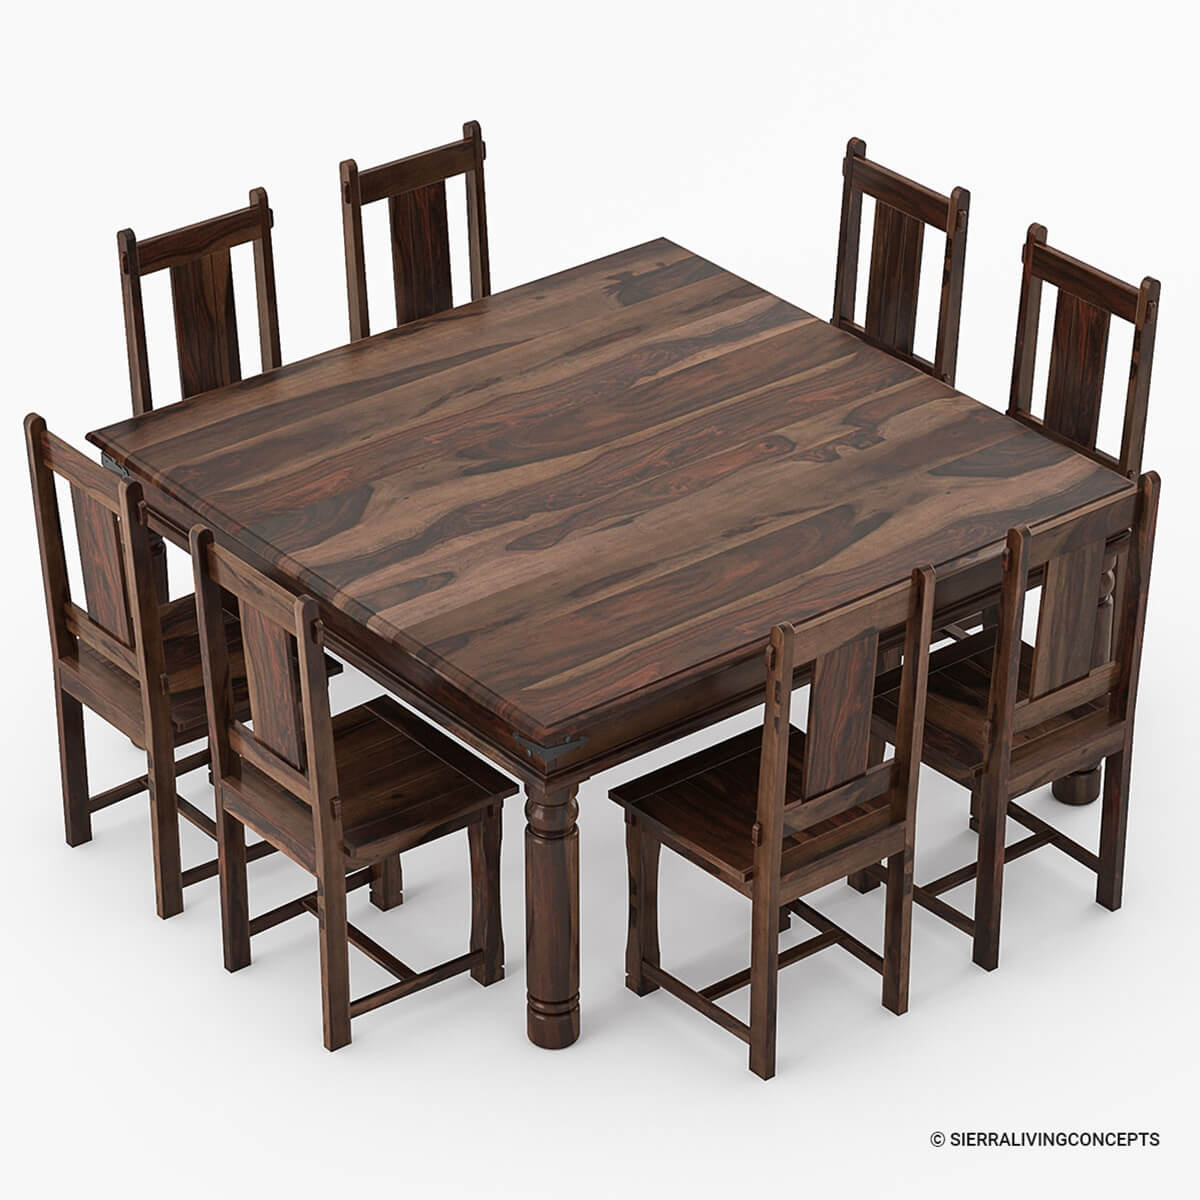 8 Chair Square Dining Table: Richmond Rustic Solid Wood Large Square Dining Room Table Chair Set